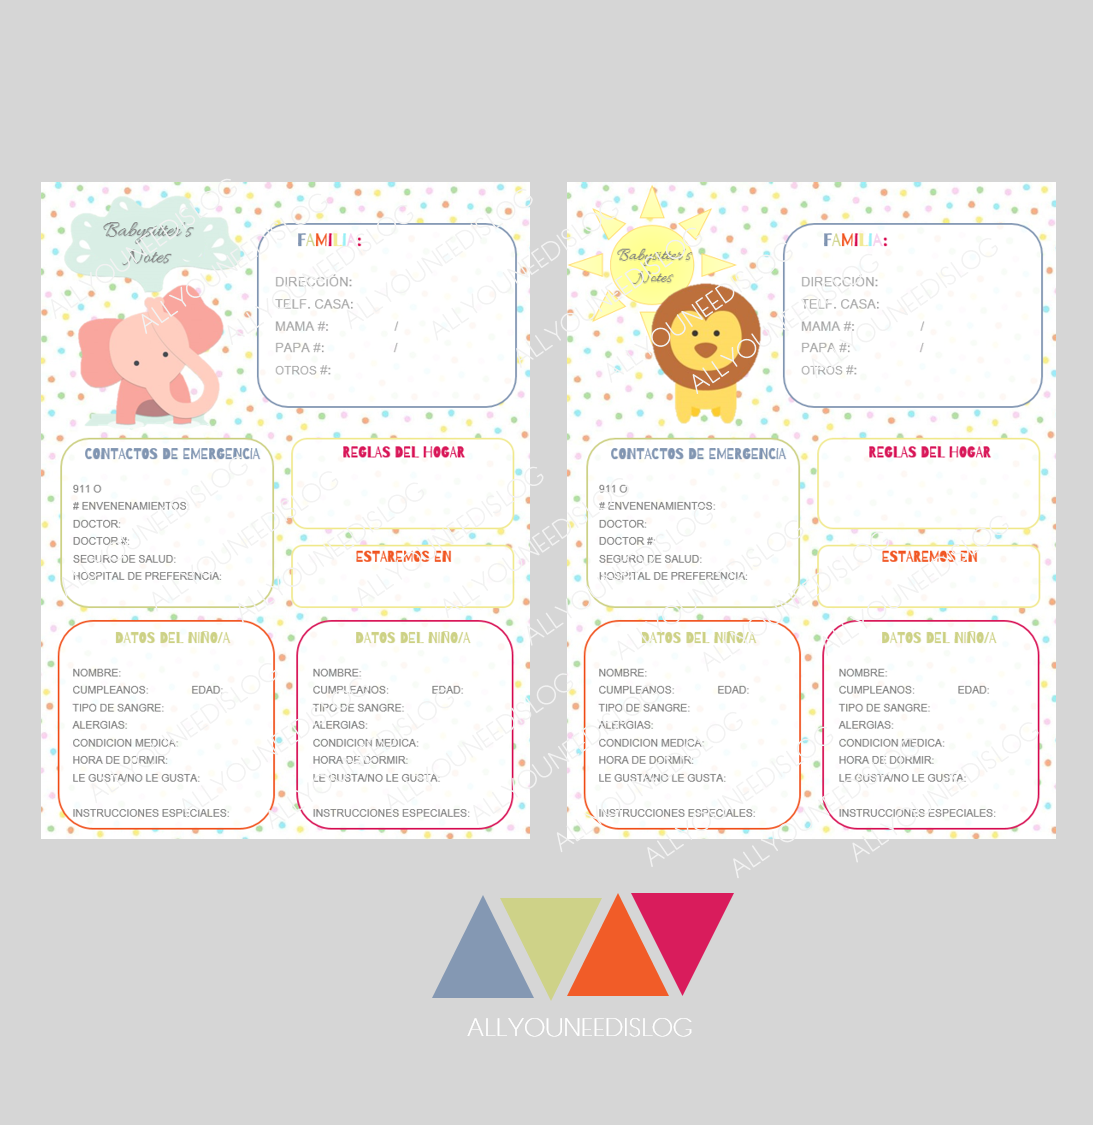 House cleaning checklist in spanish - Babysitter S Sheet English And Spanish Pdf Printable A4 Format 6 Different Animal Avatars